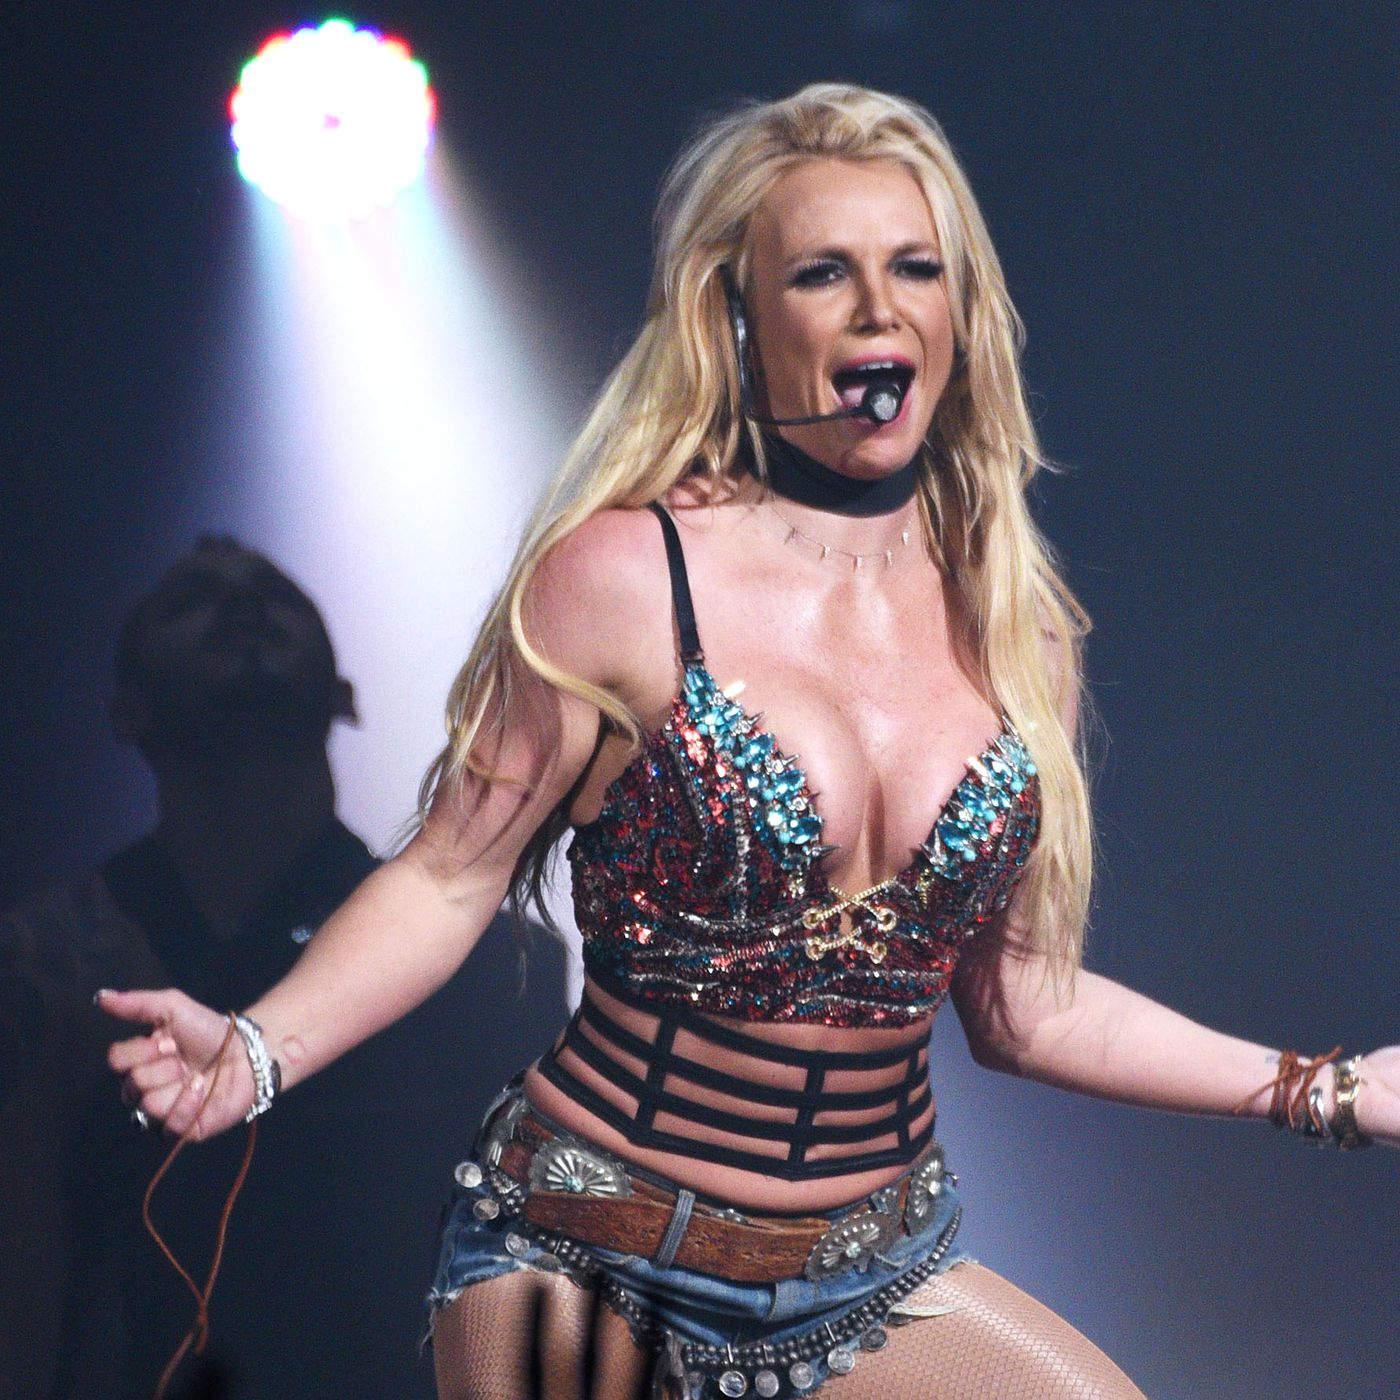 Britney Spears S New Fashion Line Proves She S On Her Way Back Racked